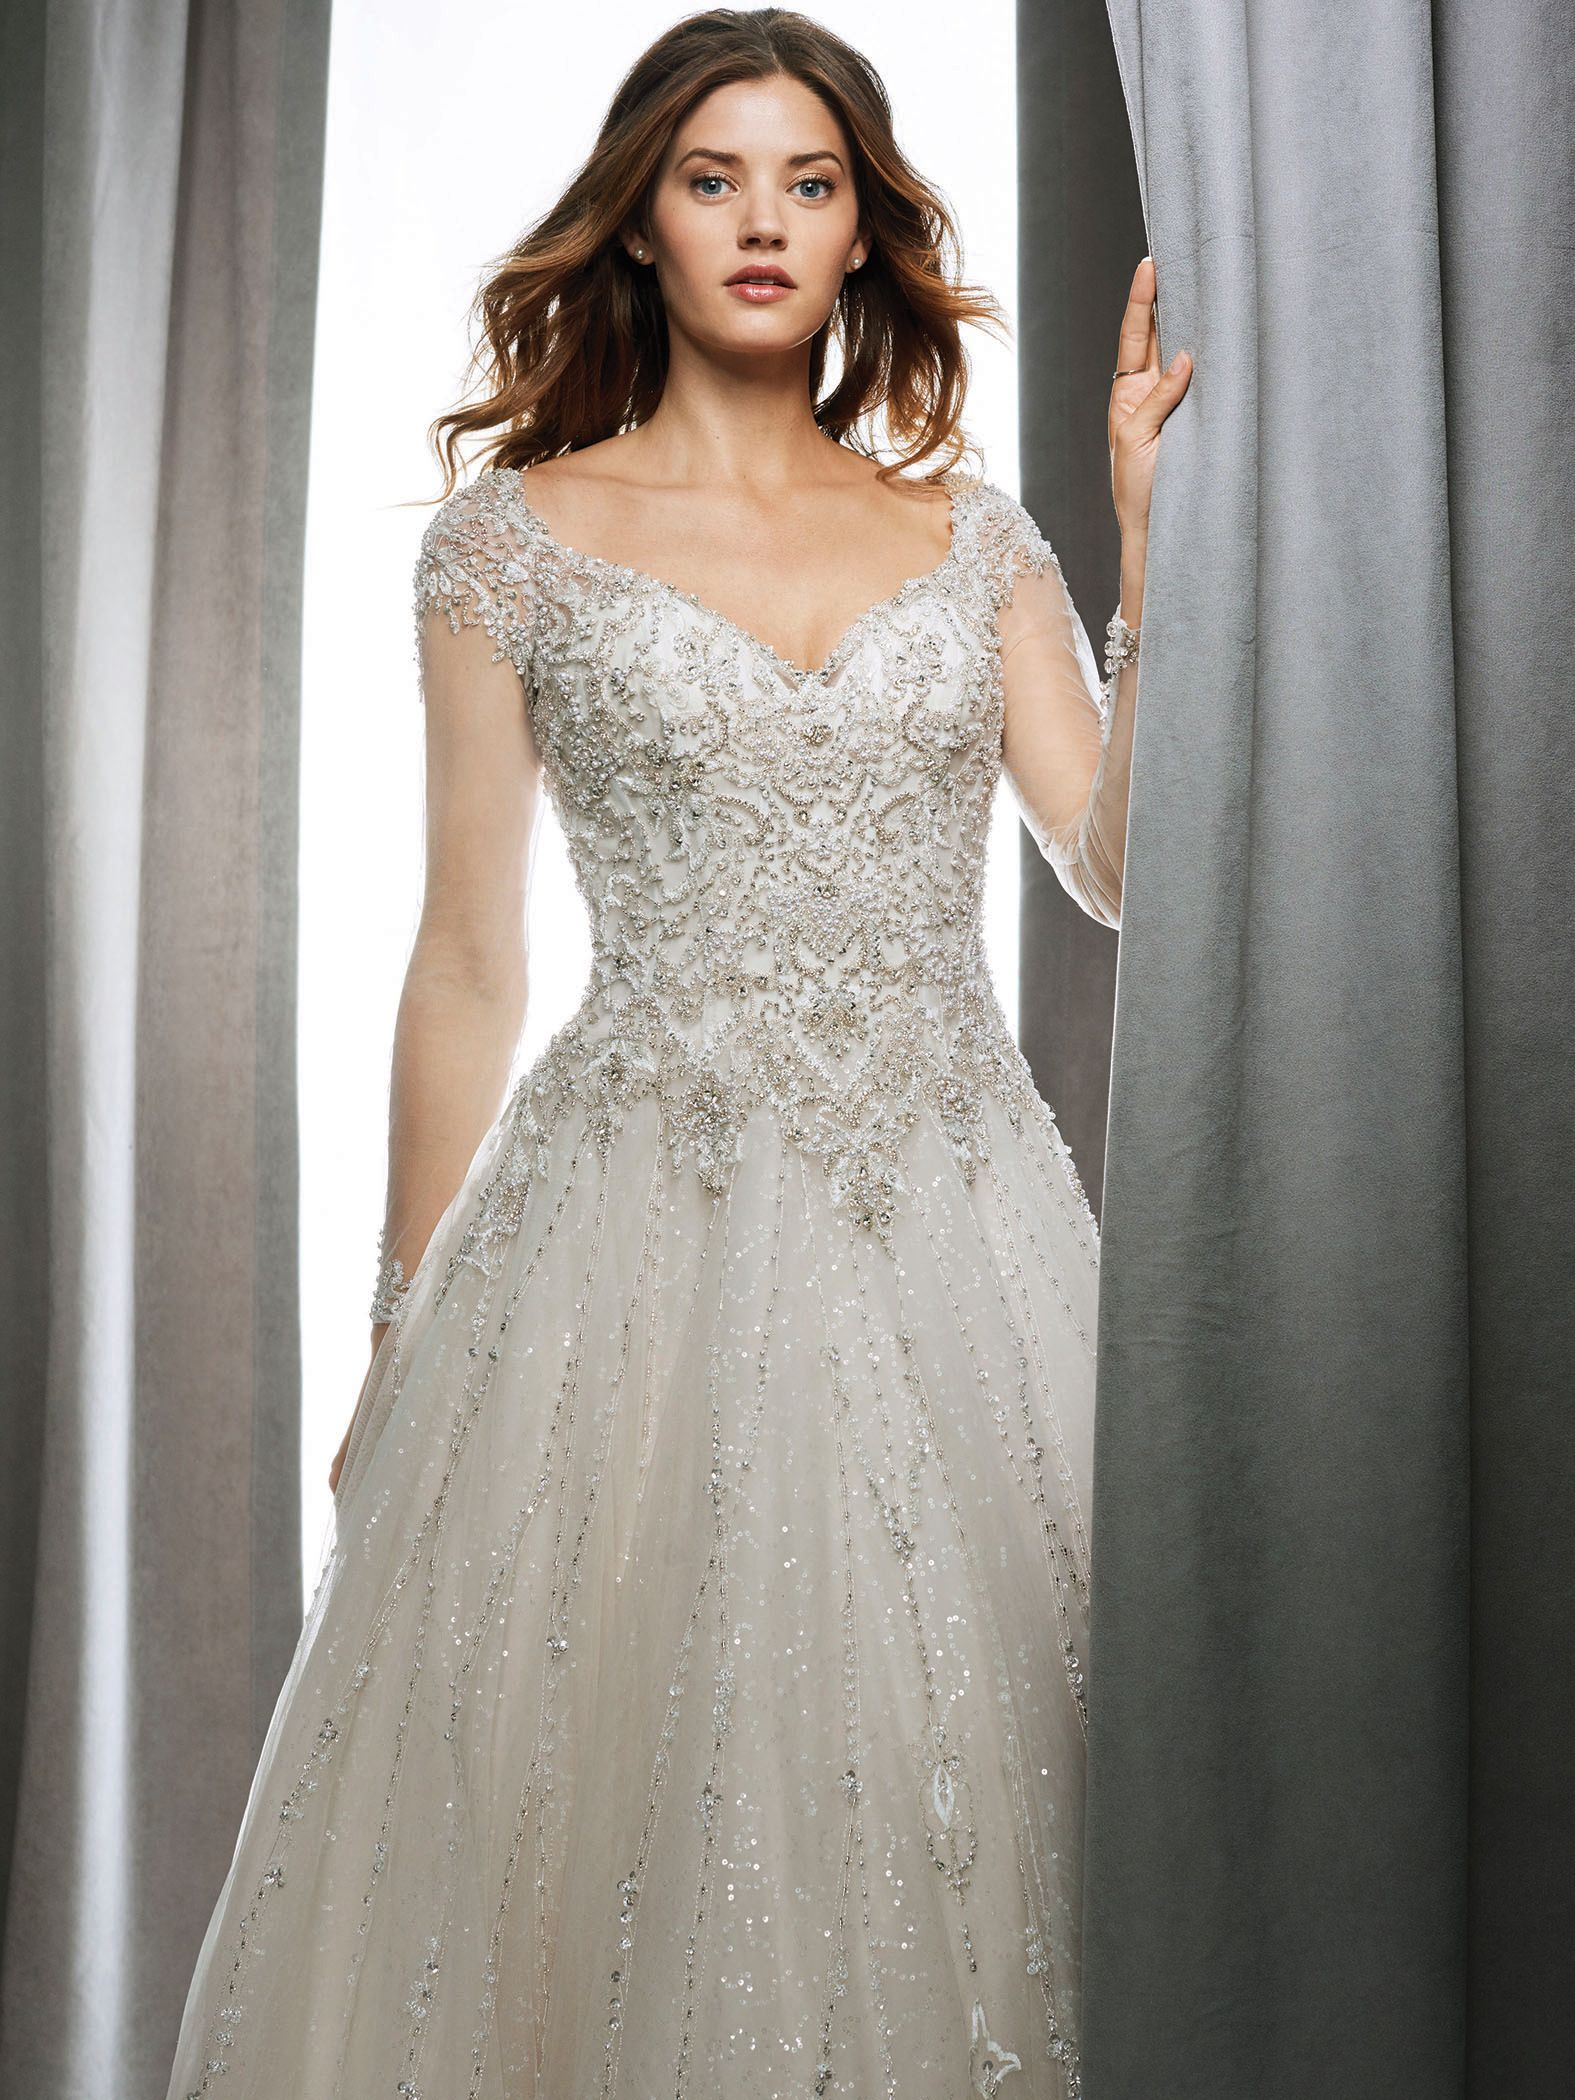 Champagne colored wedding dress  Kenneth Winston   Kenneth Winston Bridal  Pinterest  Gowns